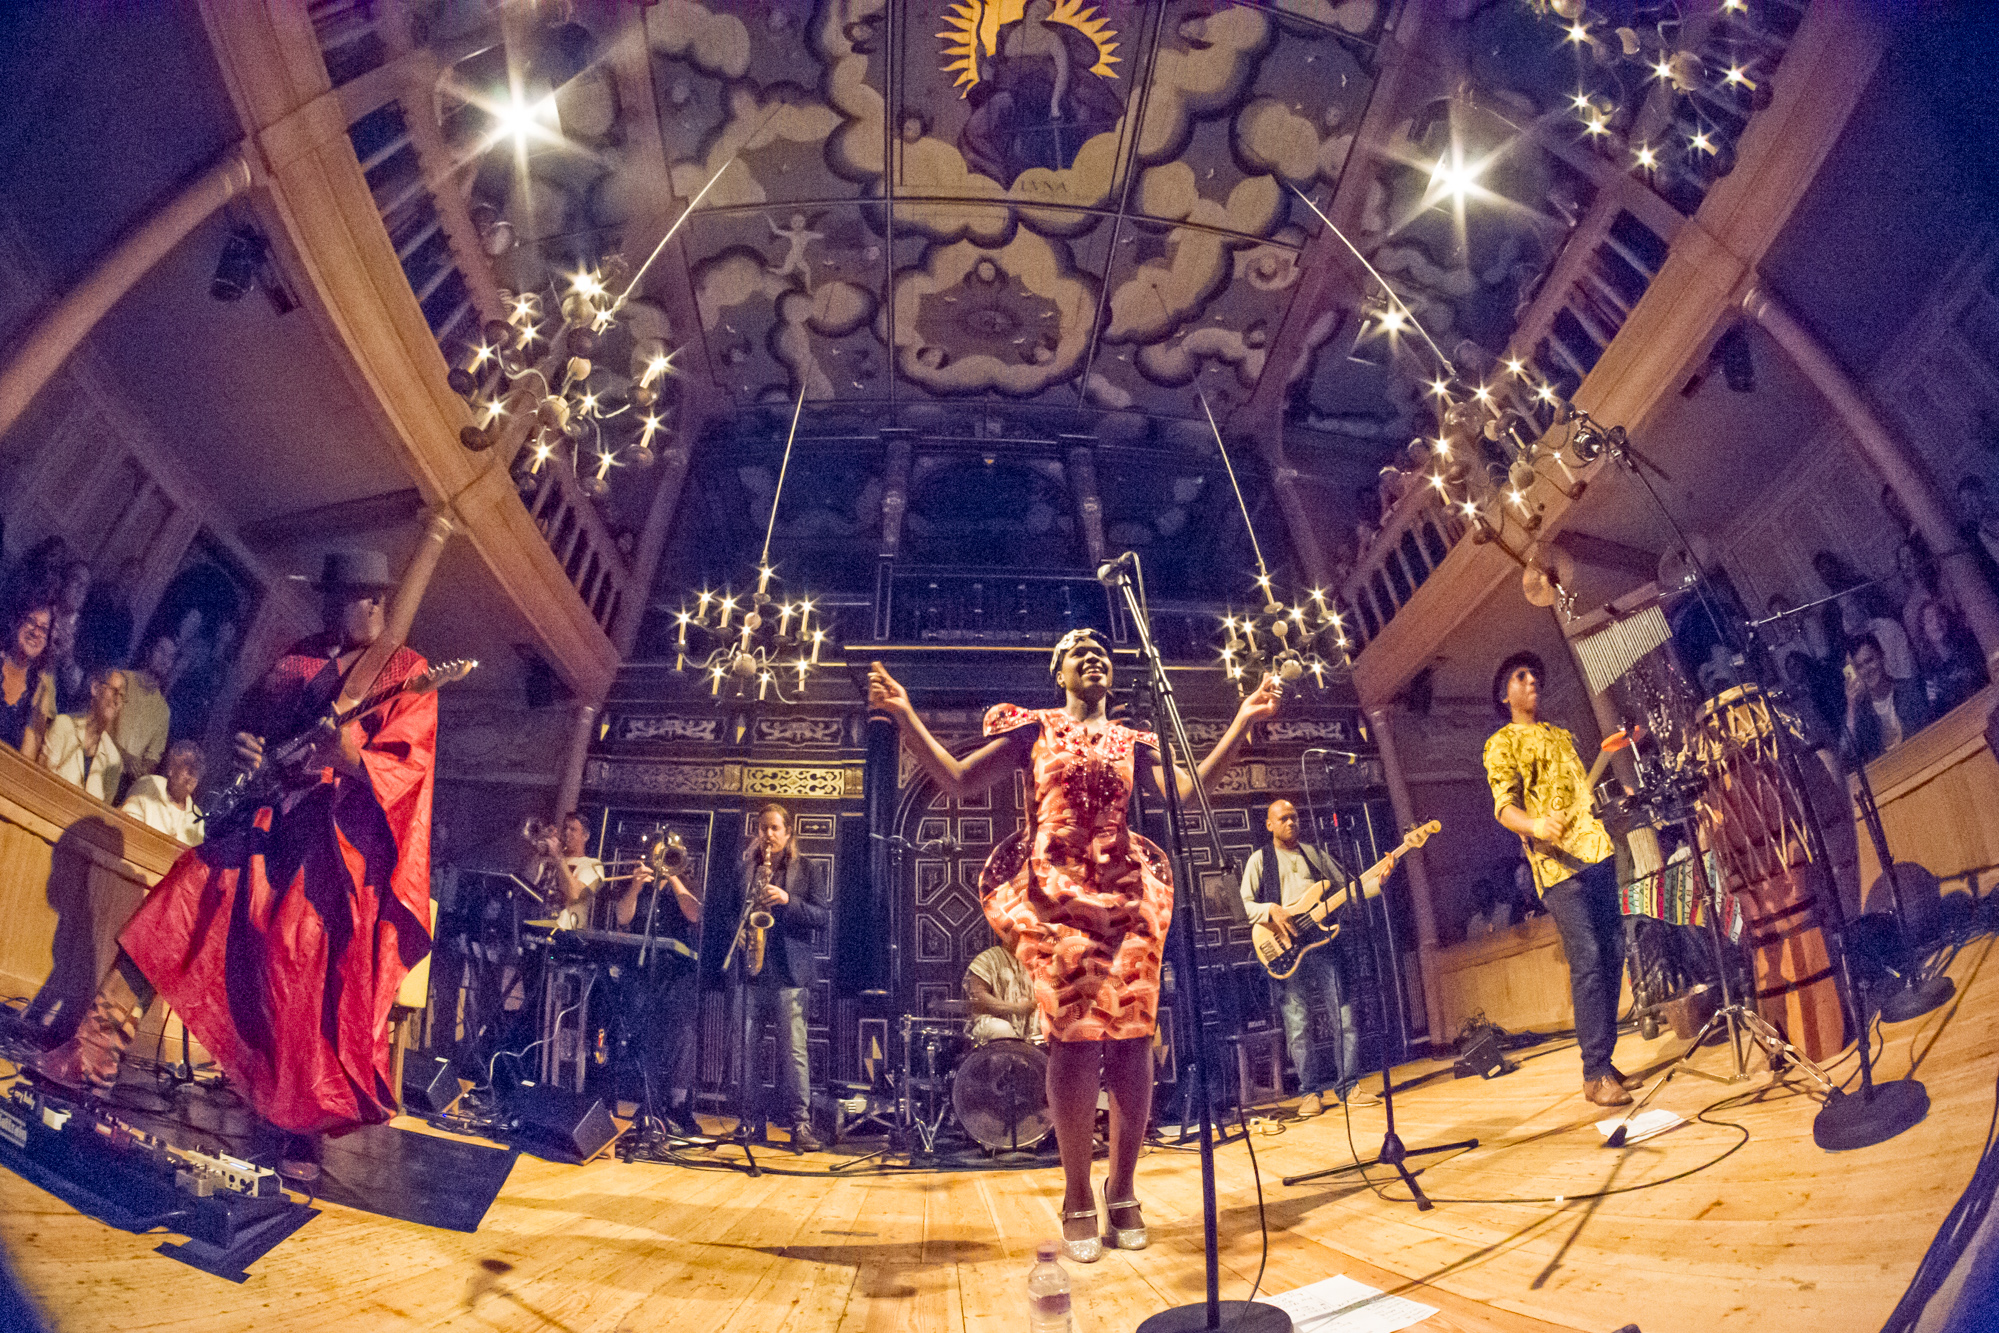 Ibibio Sound Machine photos at The Globe